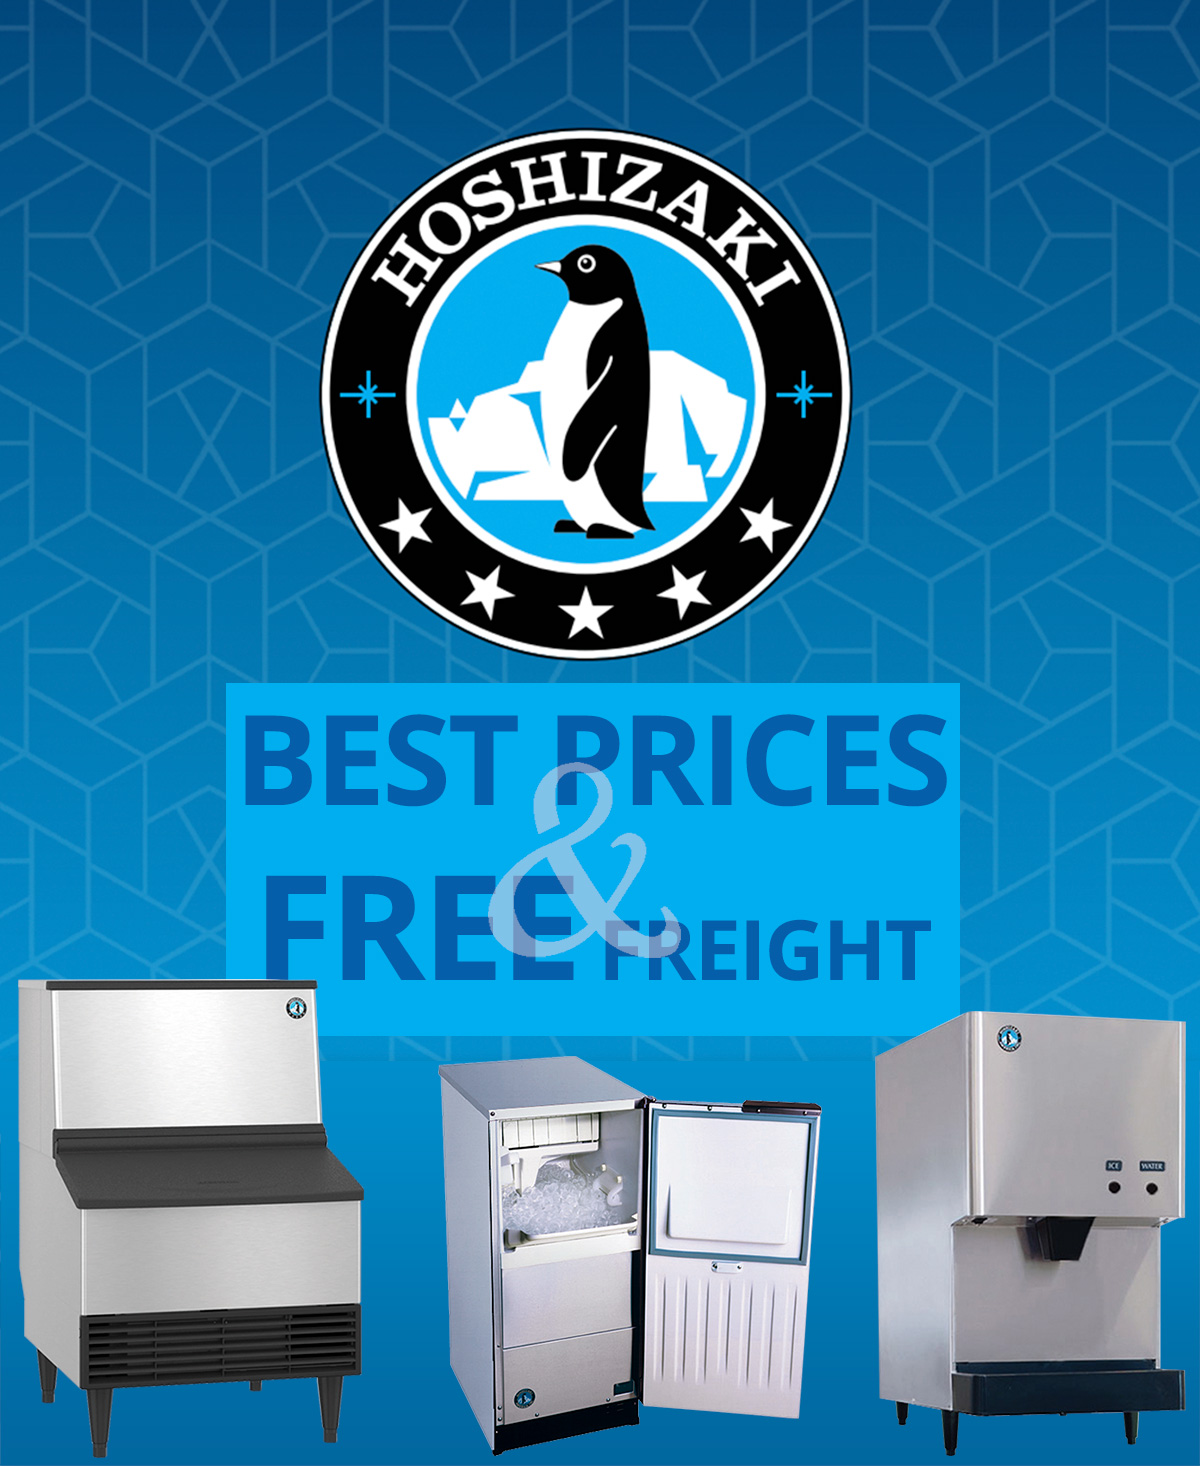 Hoshizaki Ice now at their best prices and free shipping!